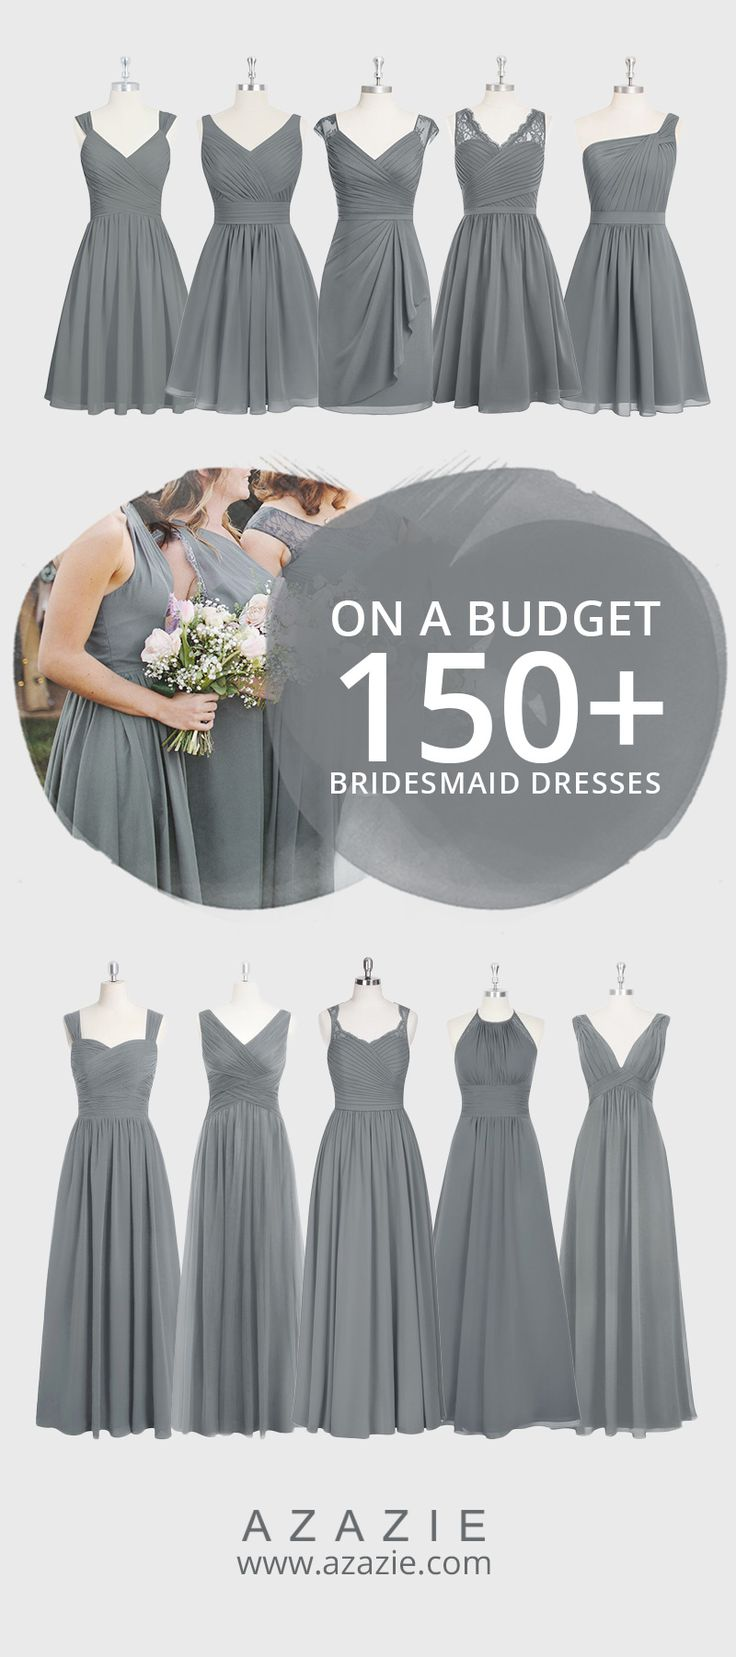 Azazie is the online destination for special occasion dresses. Our online boutique connects bridesmaids and brides with over 400 on-trend styles, where each is available in 50+ colors.